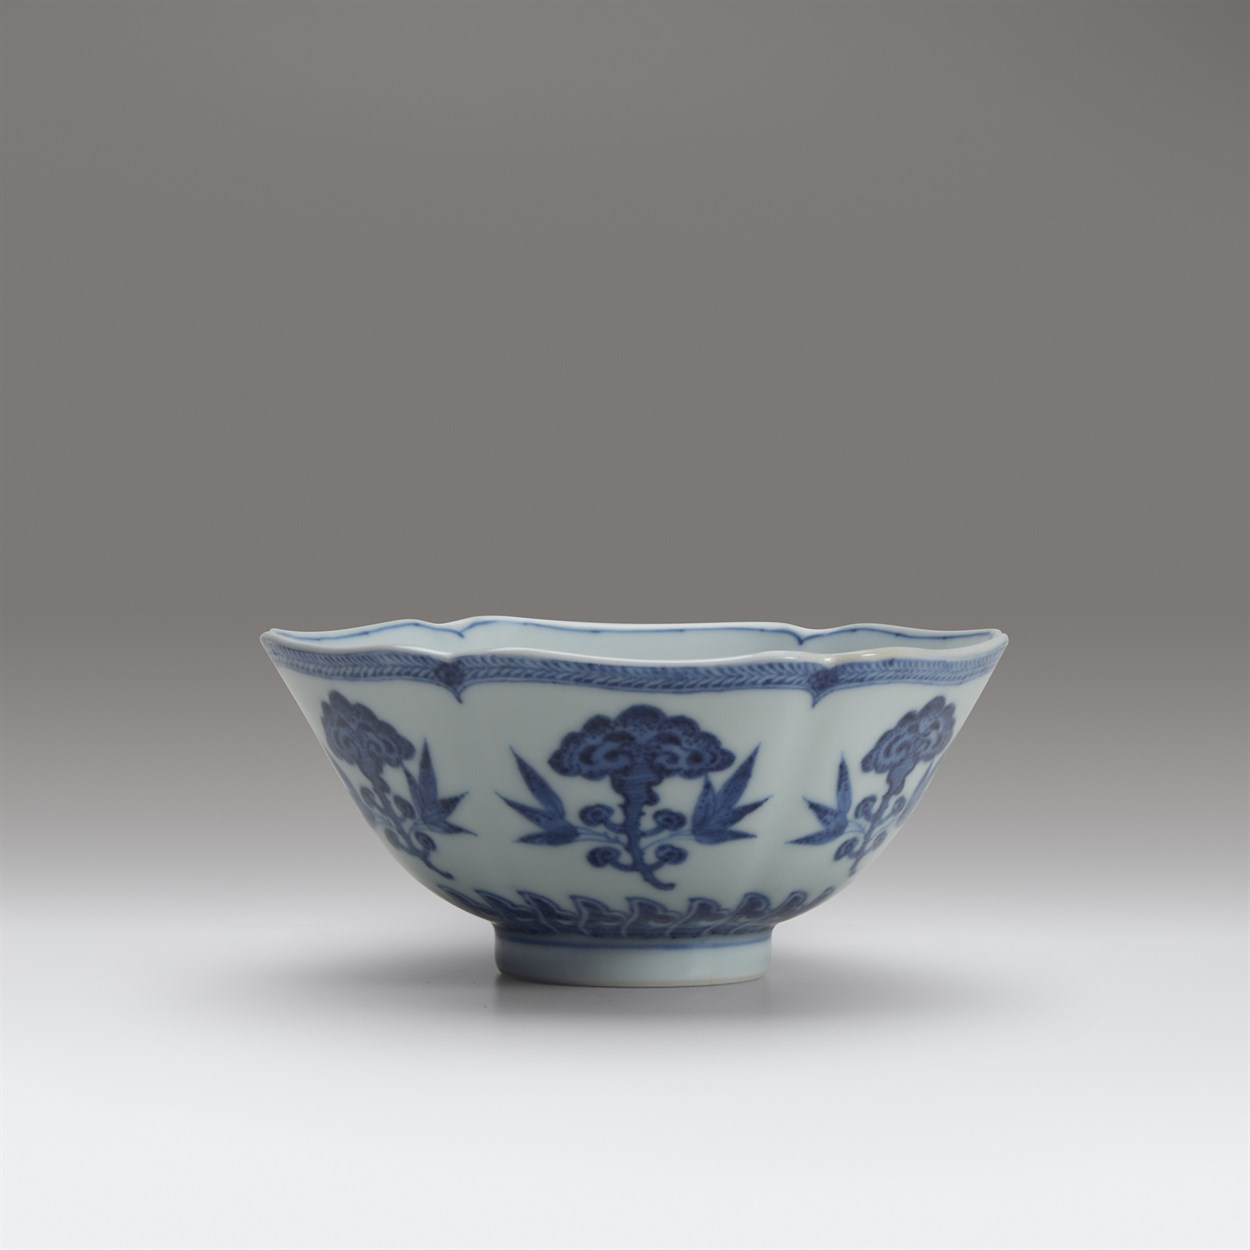 Lot 58 - A fine and rare Chinese six-lobed blue and white porcelain small bowl